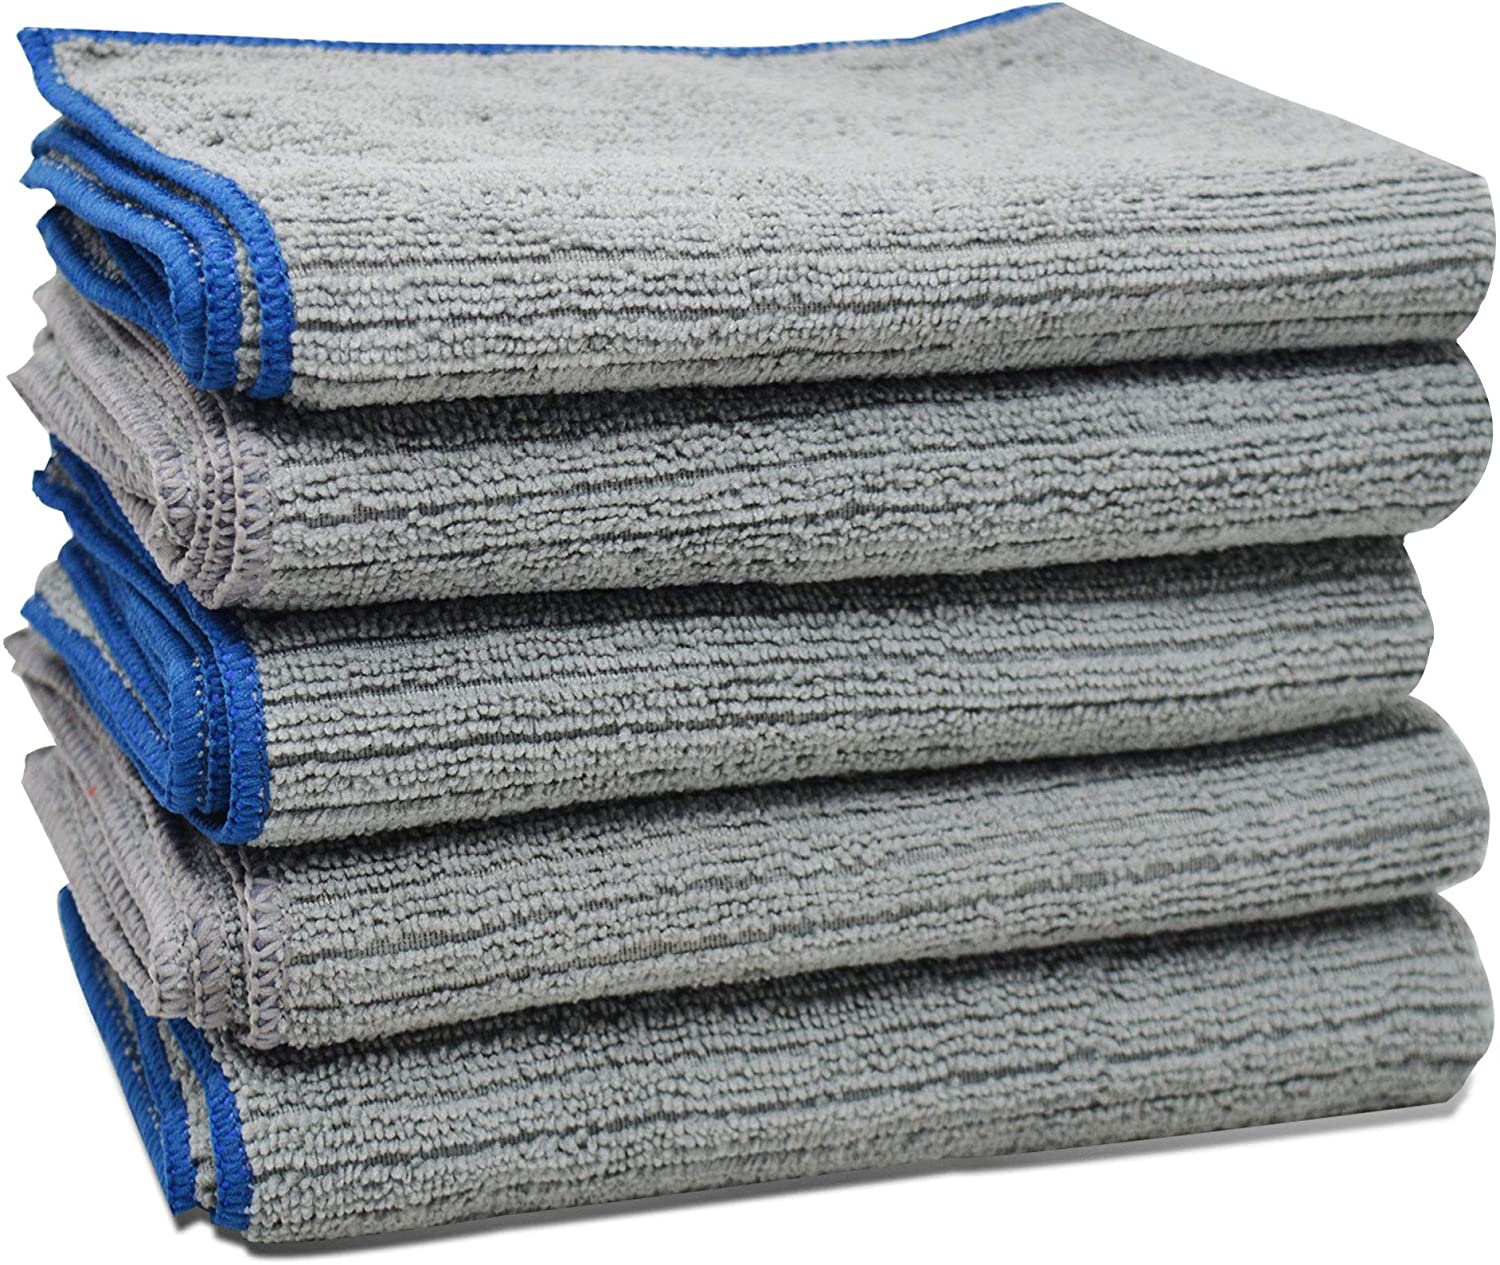 Microfibre Kitchen Dish Cloths Extra Large Grey Eco Friendly - Towelogy